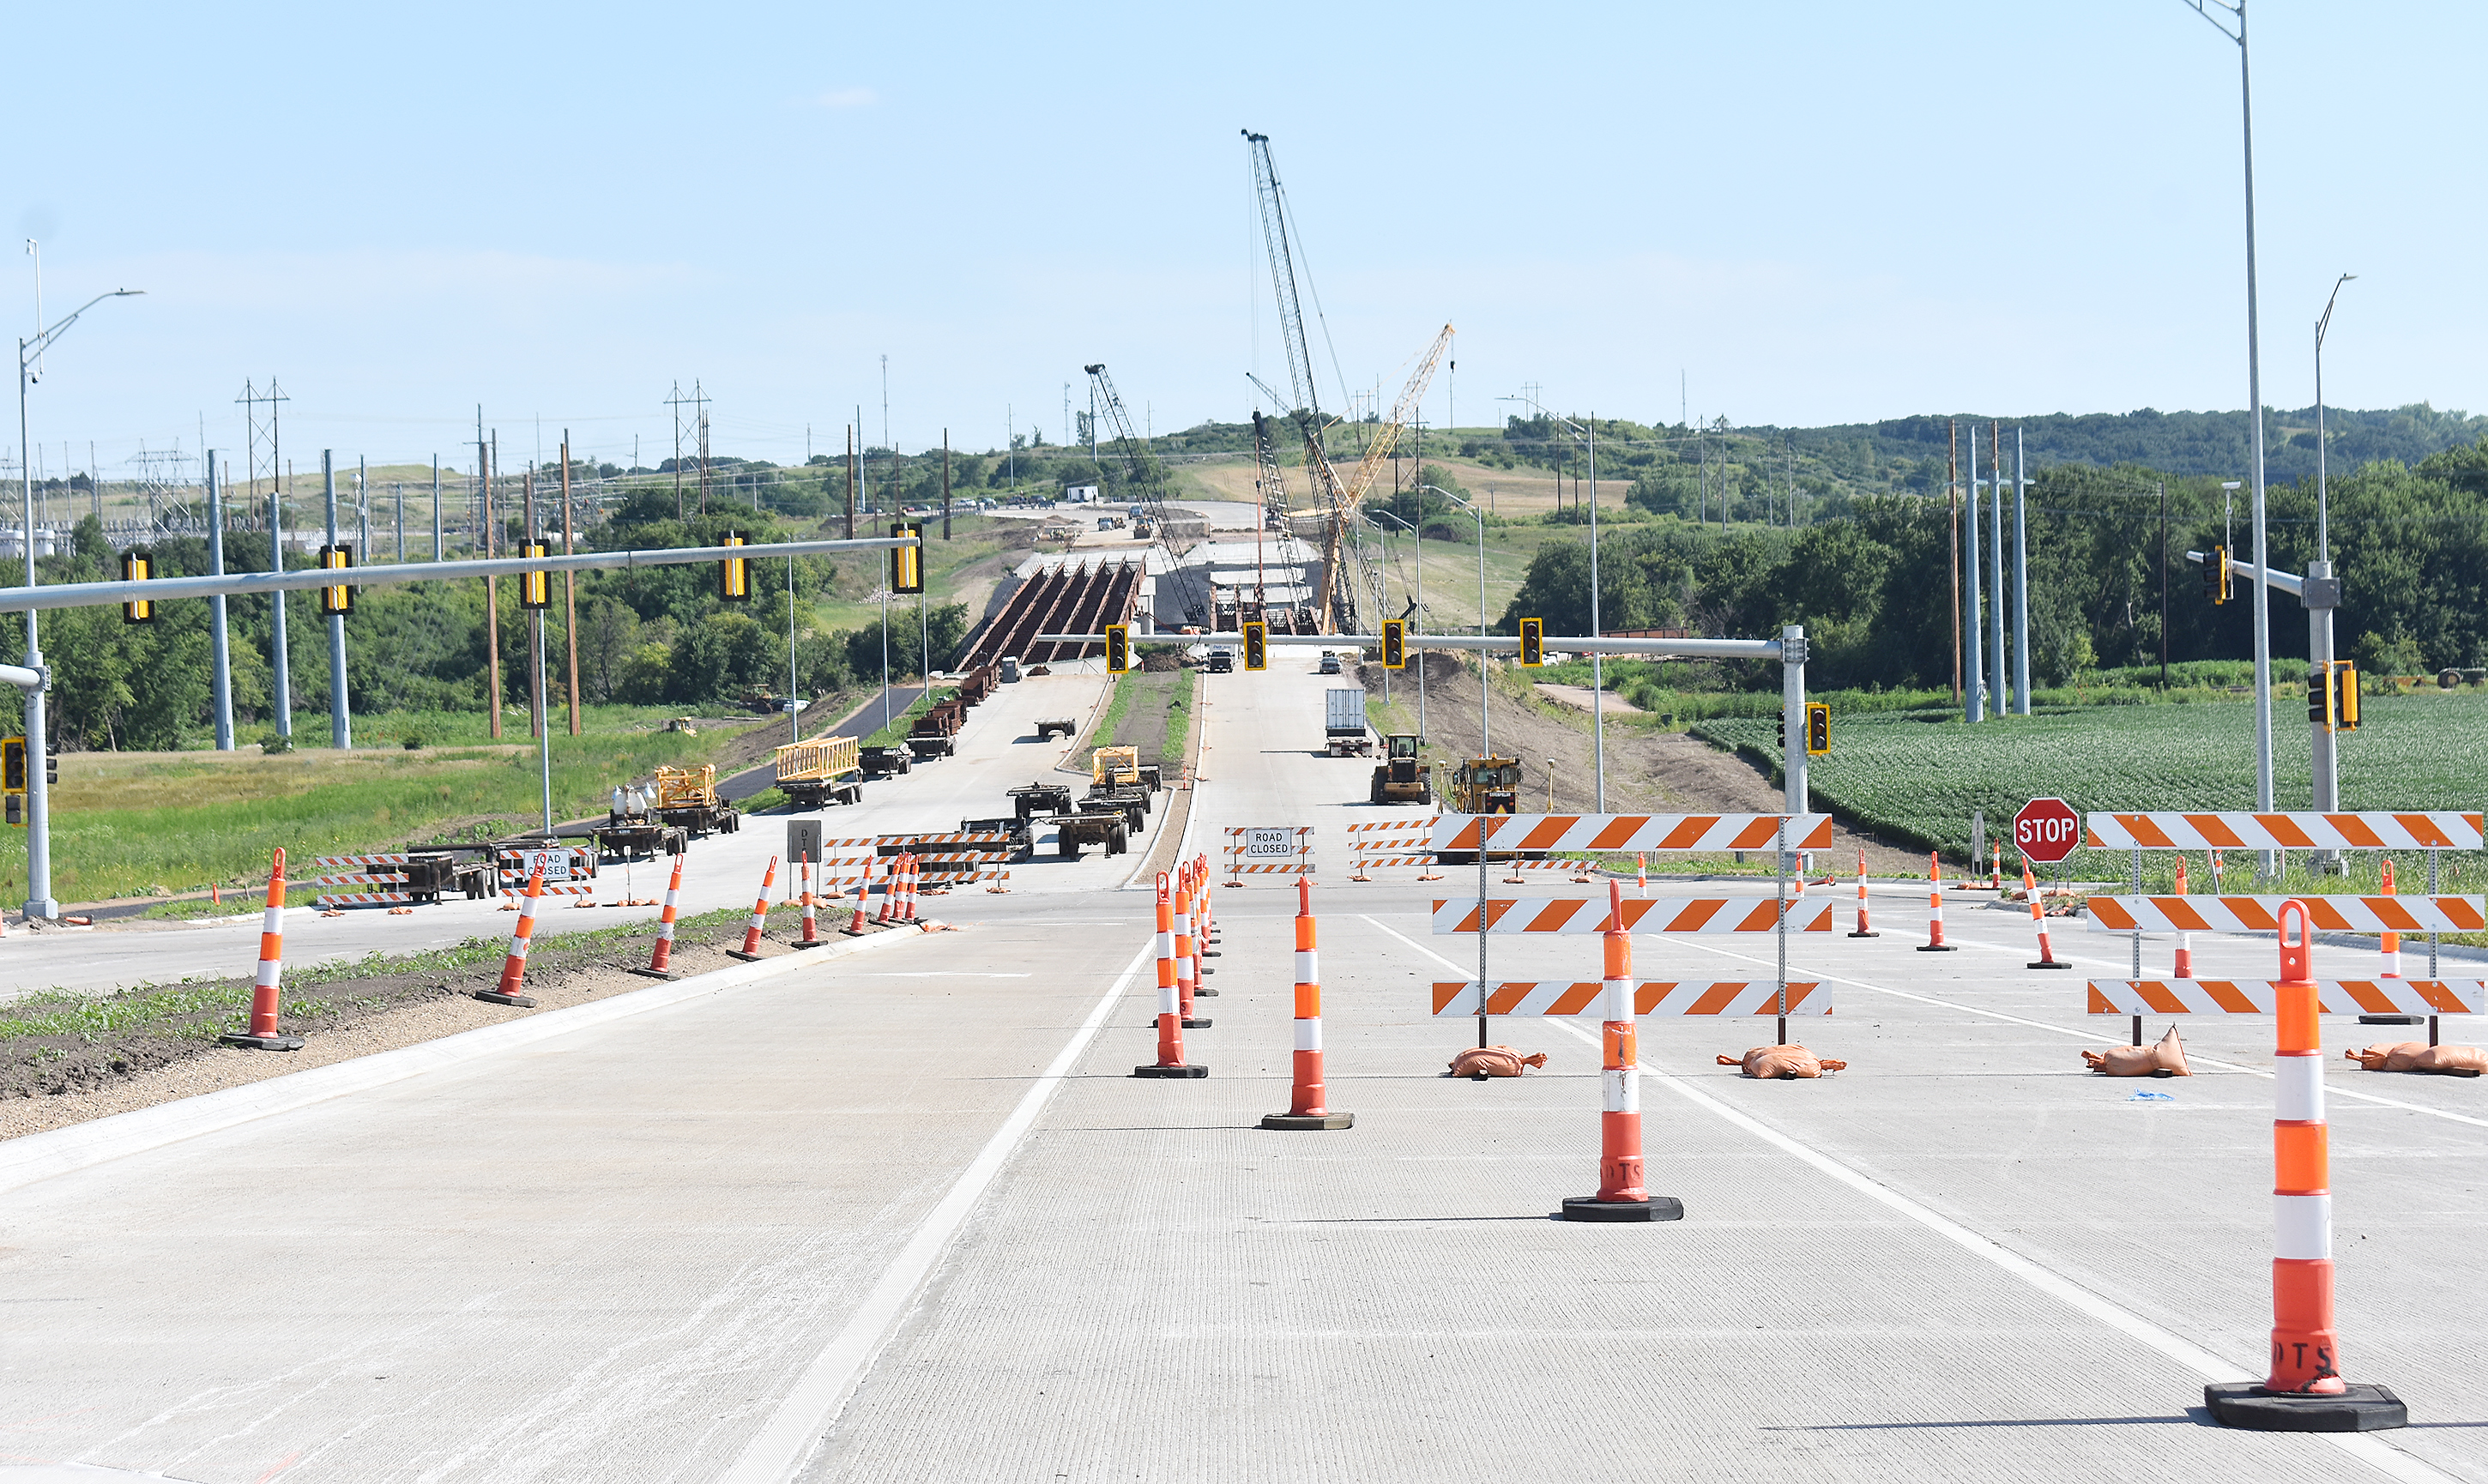 "<span style=""font-size:11px;""><span style=""font-family:arial,helvetica,sans-serif;"">Work continues on Veteran's Parkway near I-90 exit 402 last week. According to the South Dakota Department of Transportation, SDDOT has opened the new 60th Street as well as Veteran's Parkway (Hwy. 100) between I-90 and the new 60th Street. Lane closures will be in place to allow the contractor to complete remaining work in the center median and behind the curb in the outside lanes. Veteran's Parkway between Rice Street and the new 60th Street is anticipated to be complete and open to traffic by the end of 2020.<span class=""Apple-converted-space""> <strong>Jamie Hult/BV Journal</strong></span></span></span>"